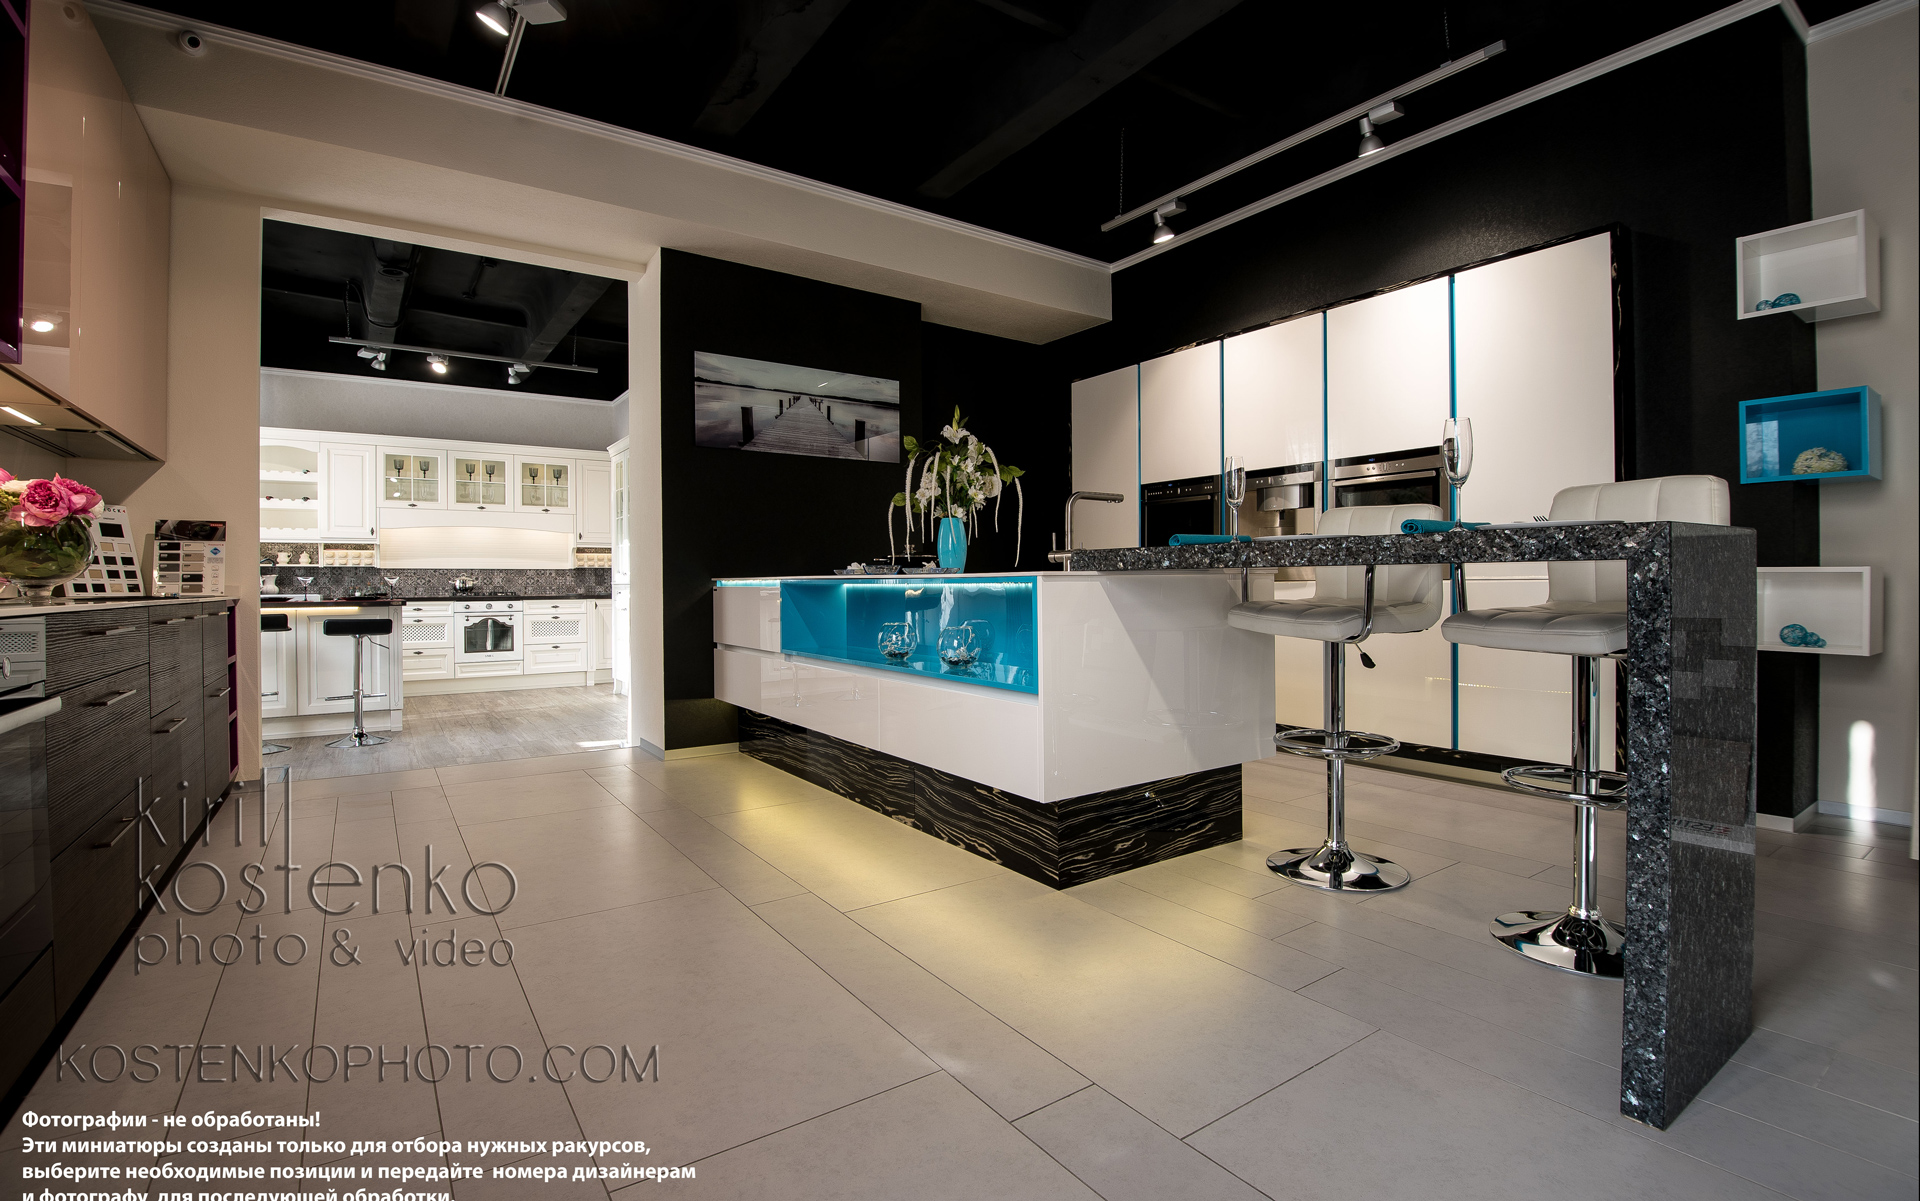 Another showroom in Krasnodar opened!